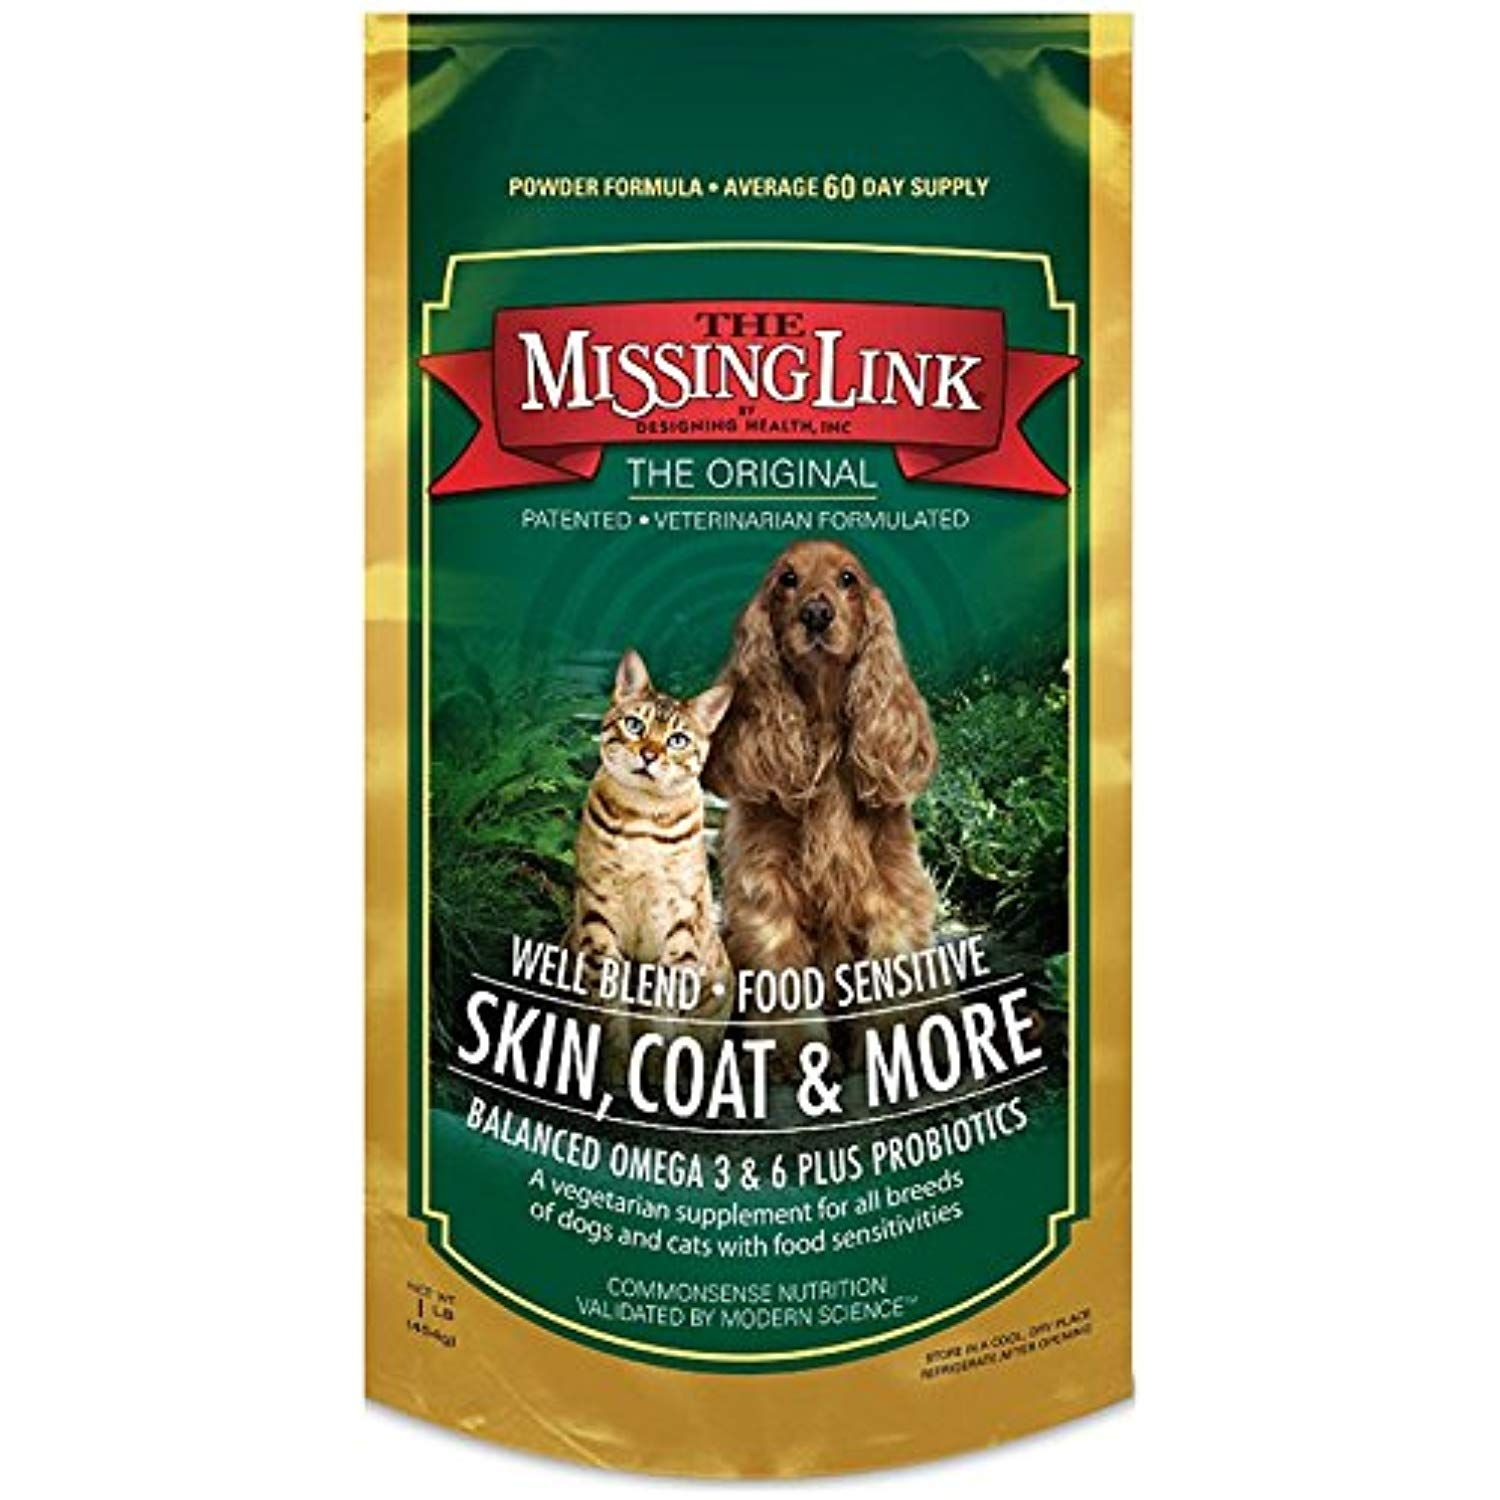 Missing Link 1 Pound Well Blend Nutritional Supplement For Dogs And Cats 2 Pound Read More Reviews Cat Supplement Vegetarian Skin Nutritional Supplements